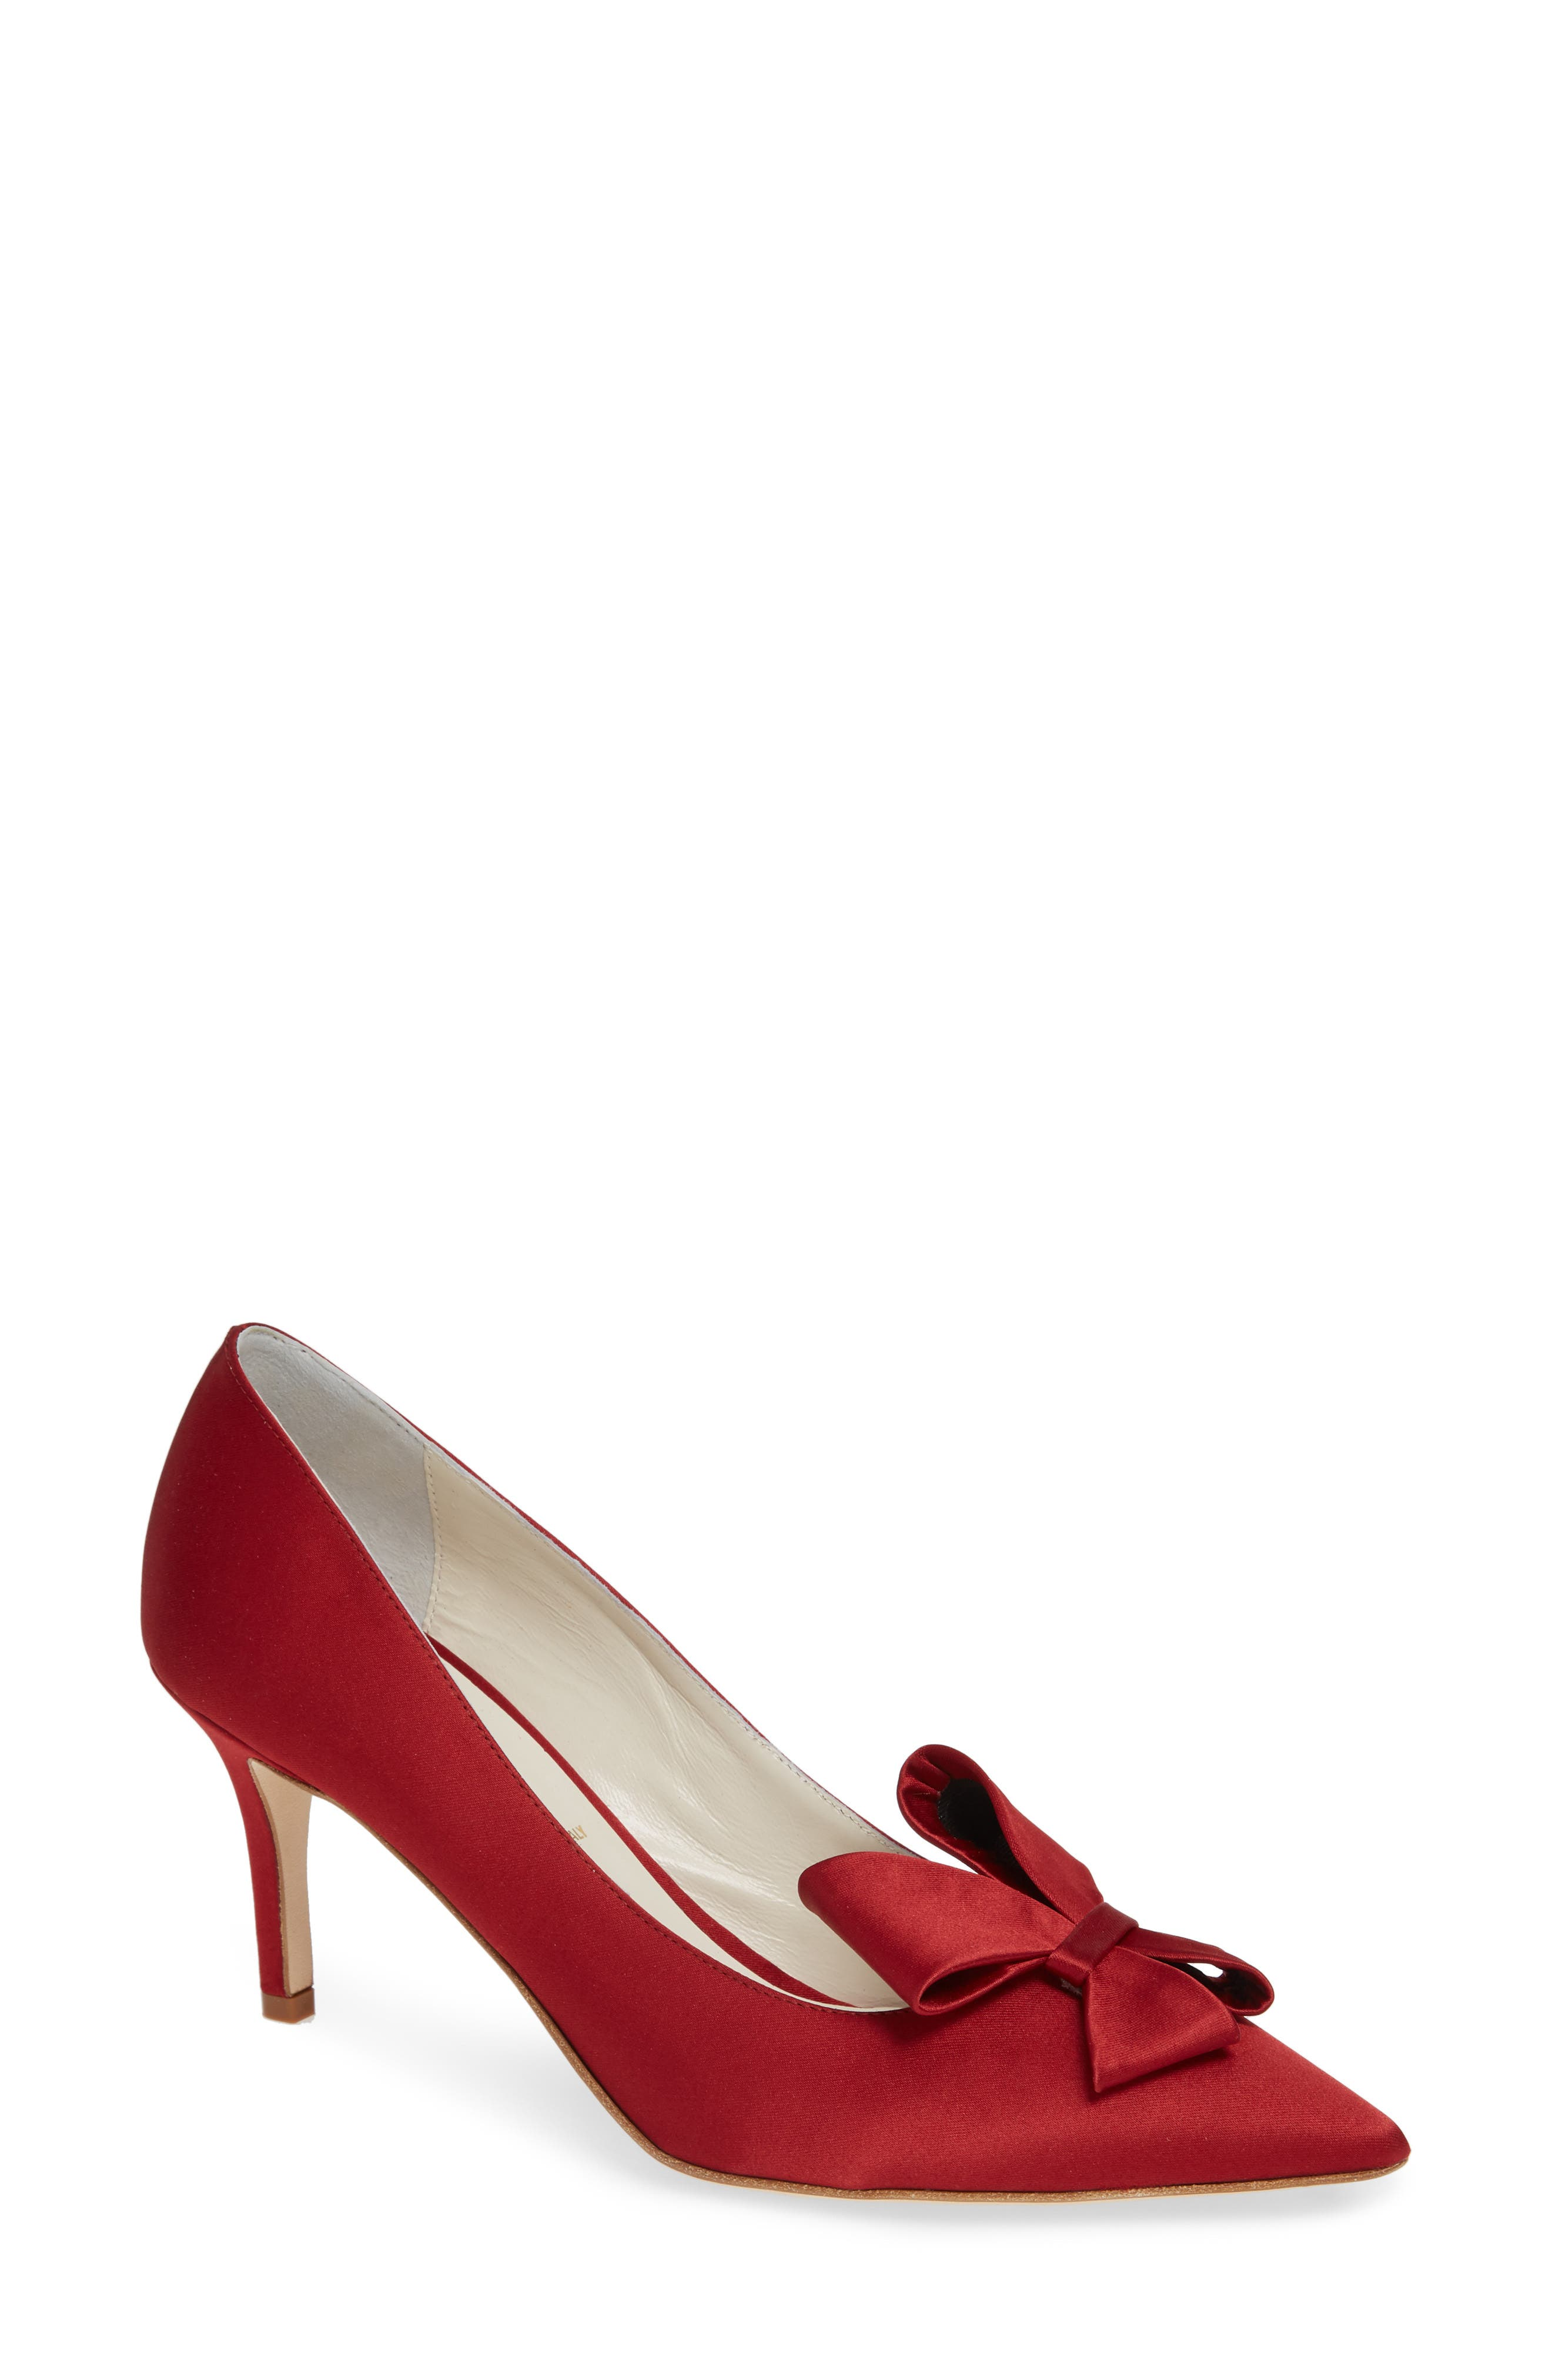 SOMETHING BLEU Caitlin Bow Pointy Toe Pump, Main, color, LIPSTICK MOIRE